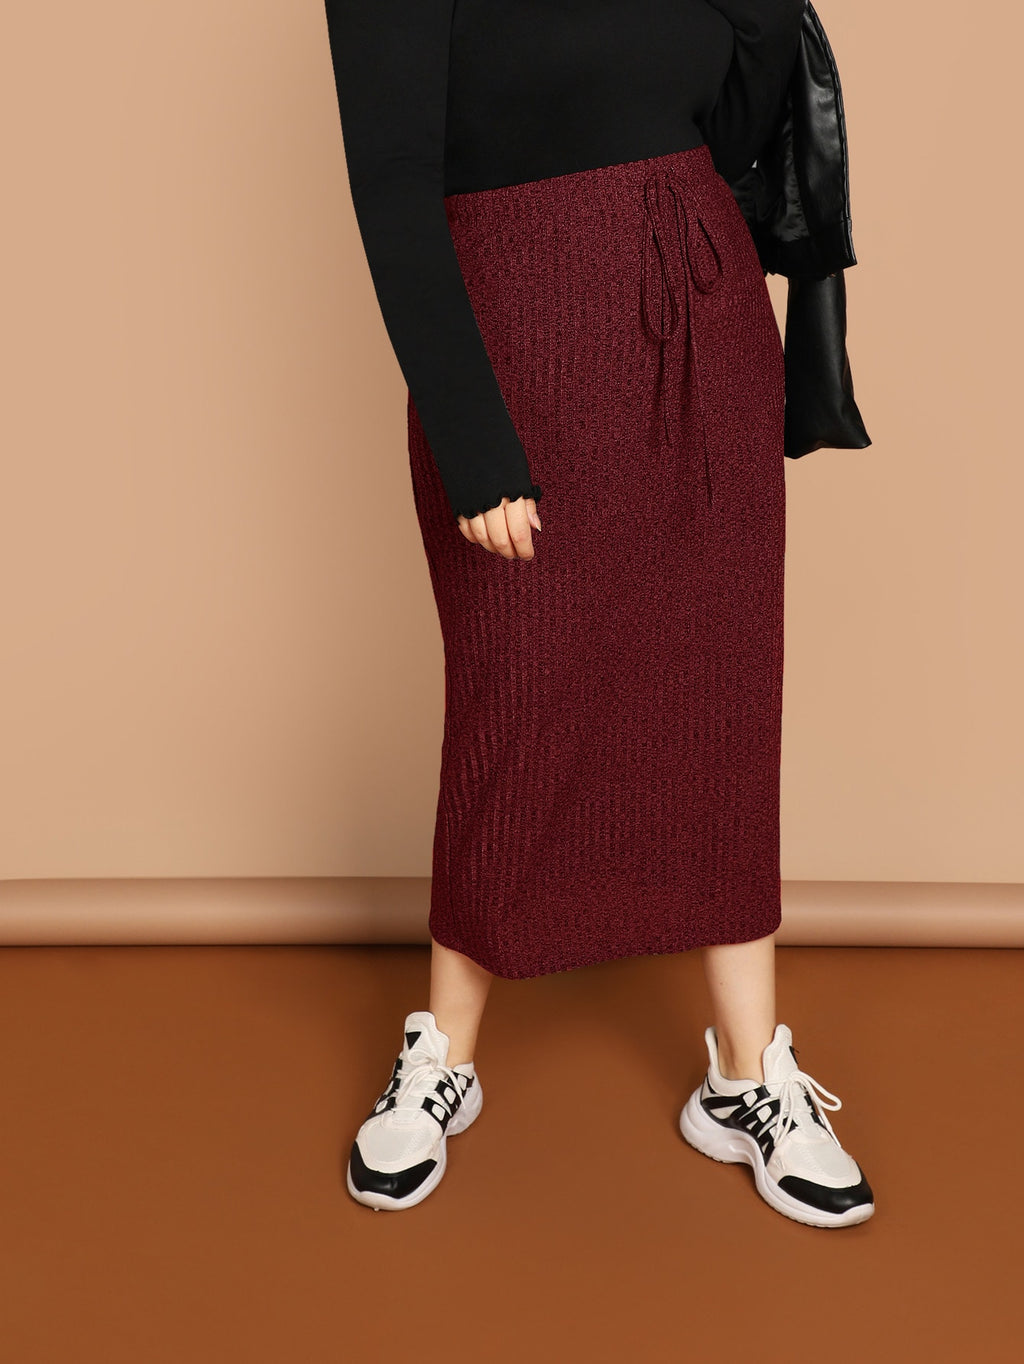 Plus Size Midi Skirts - Maroon Drawstring Waist Rib-knit Pencil Skirt